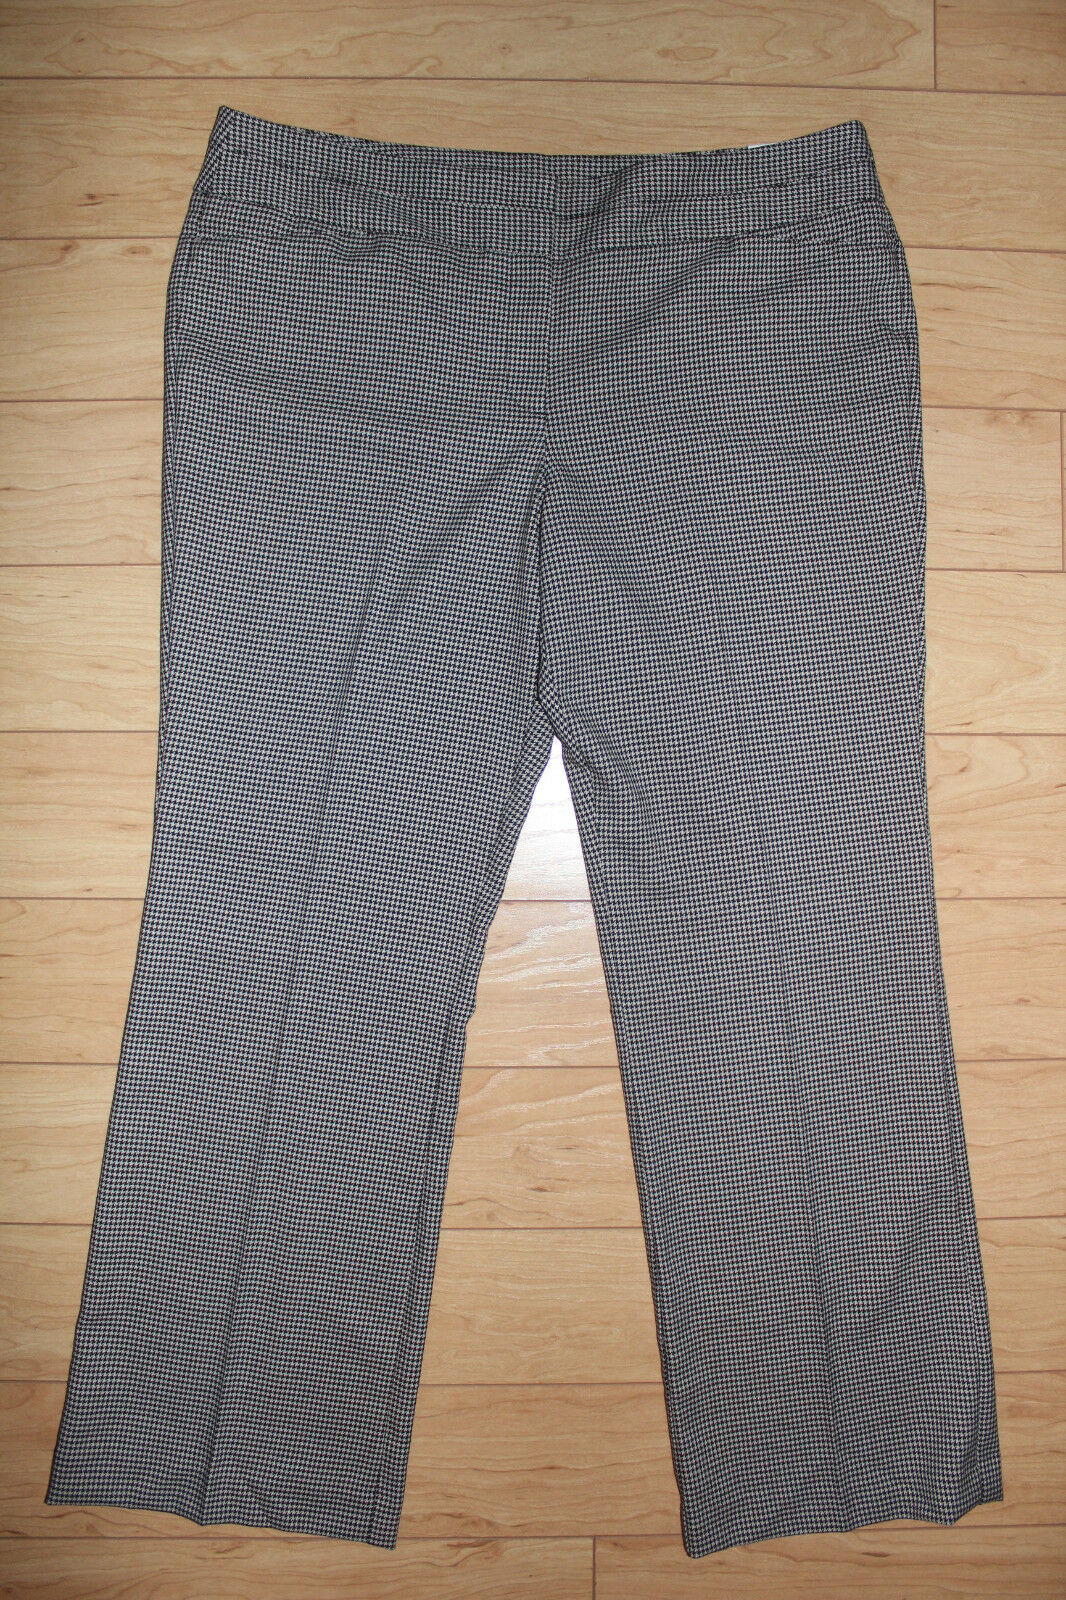 Ann Taylor LOFT Outlet Original Straight Leg Pants in Mini Houndstooth Size 16